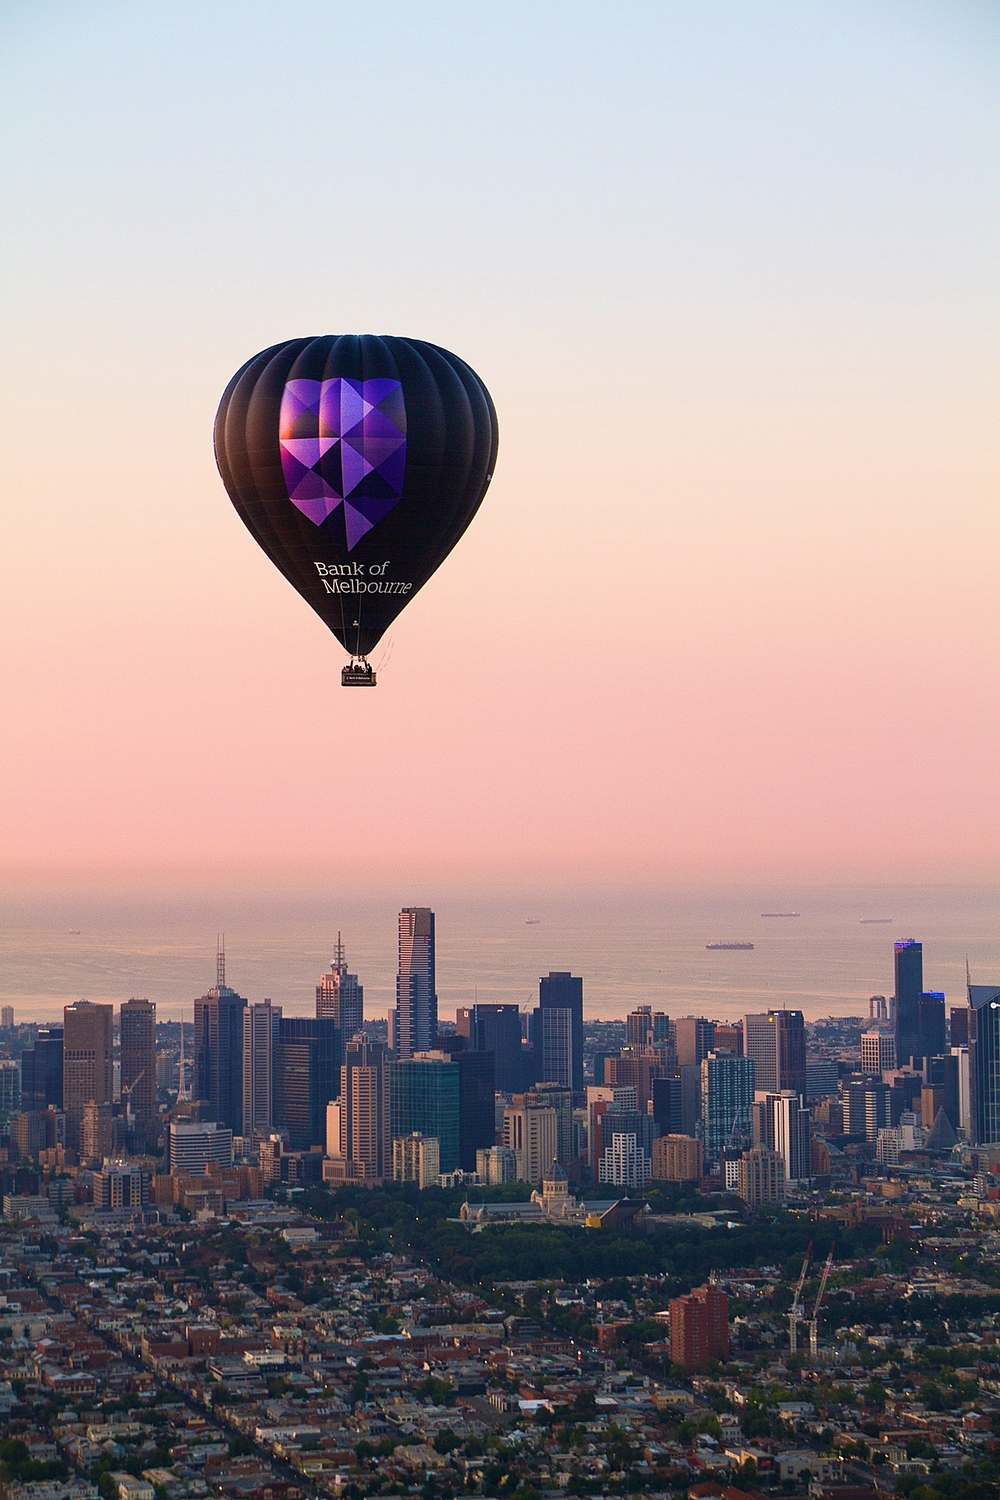 Bank of Melbourne hot air balloon over Melbourne 1.jpeg